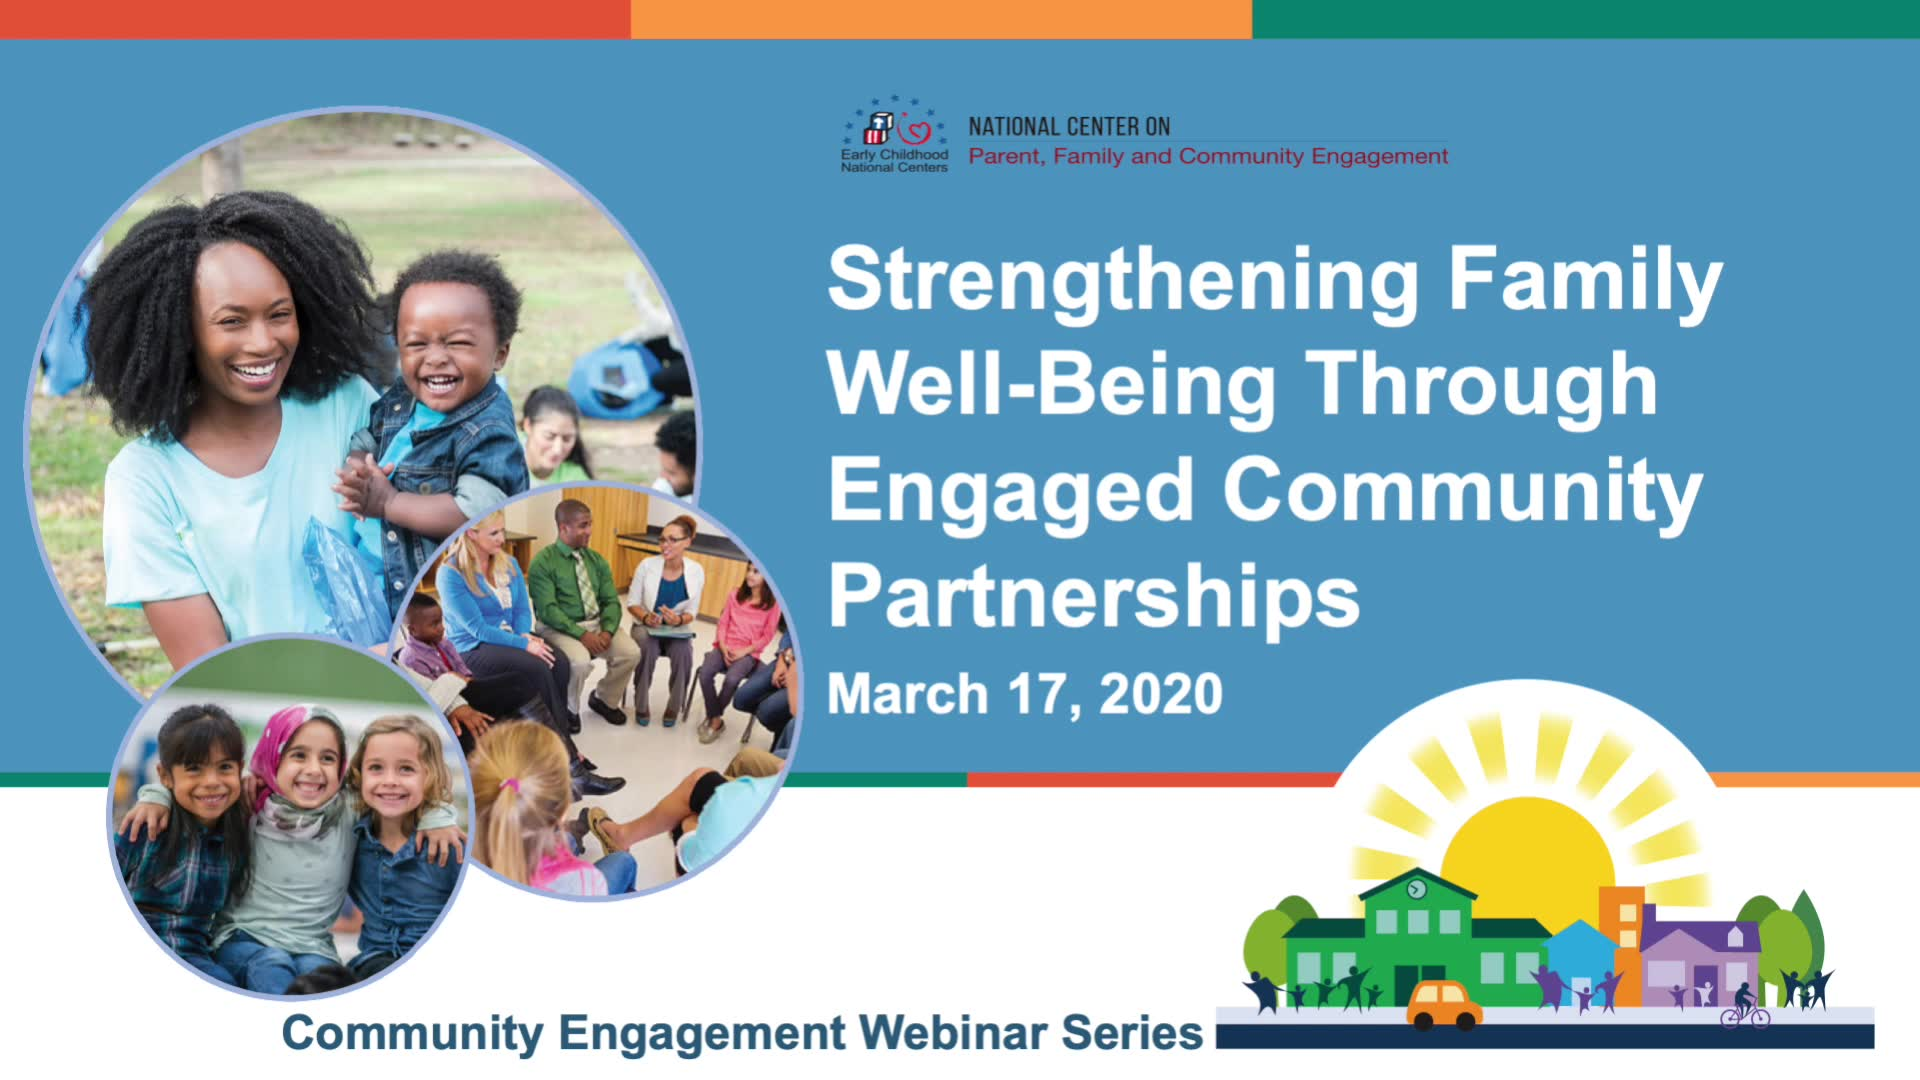 Strengthening Family Well-Being Through Engaged Community Partnerships